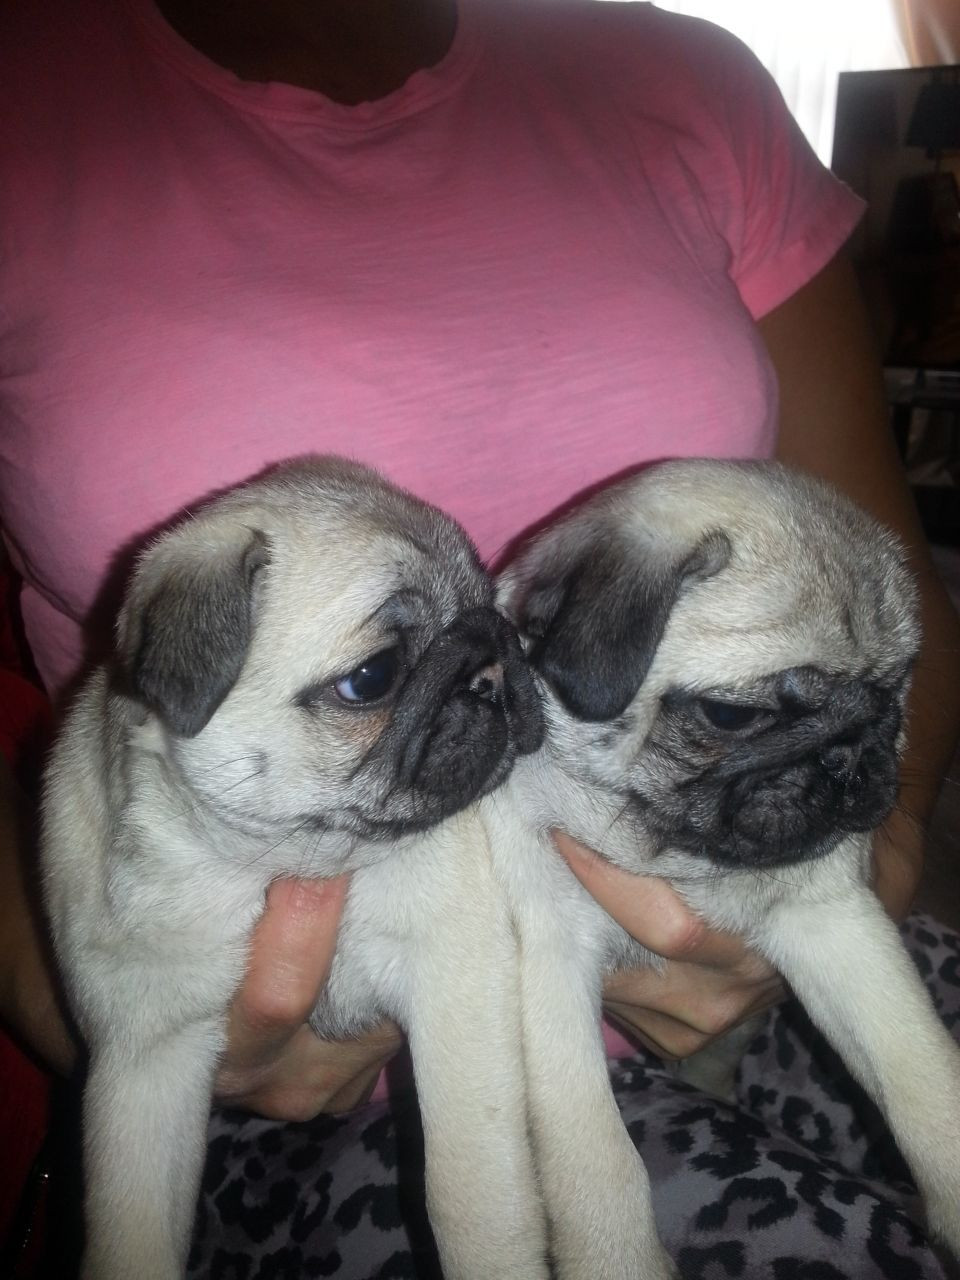 Baby pugs for sale in los angeles : Mobile code in usa